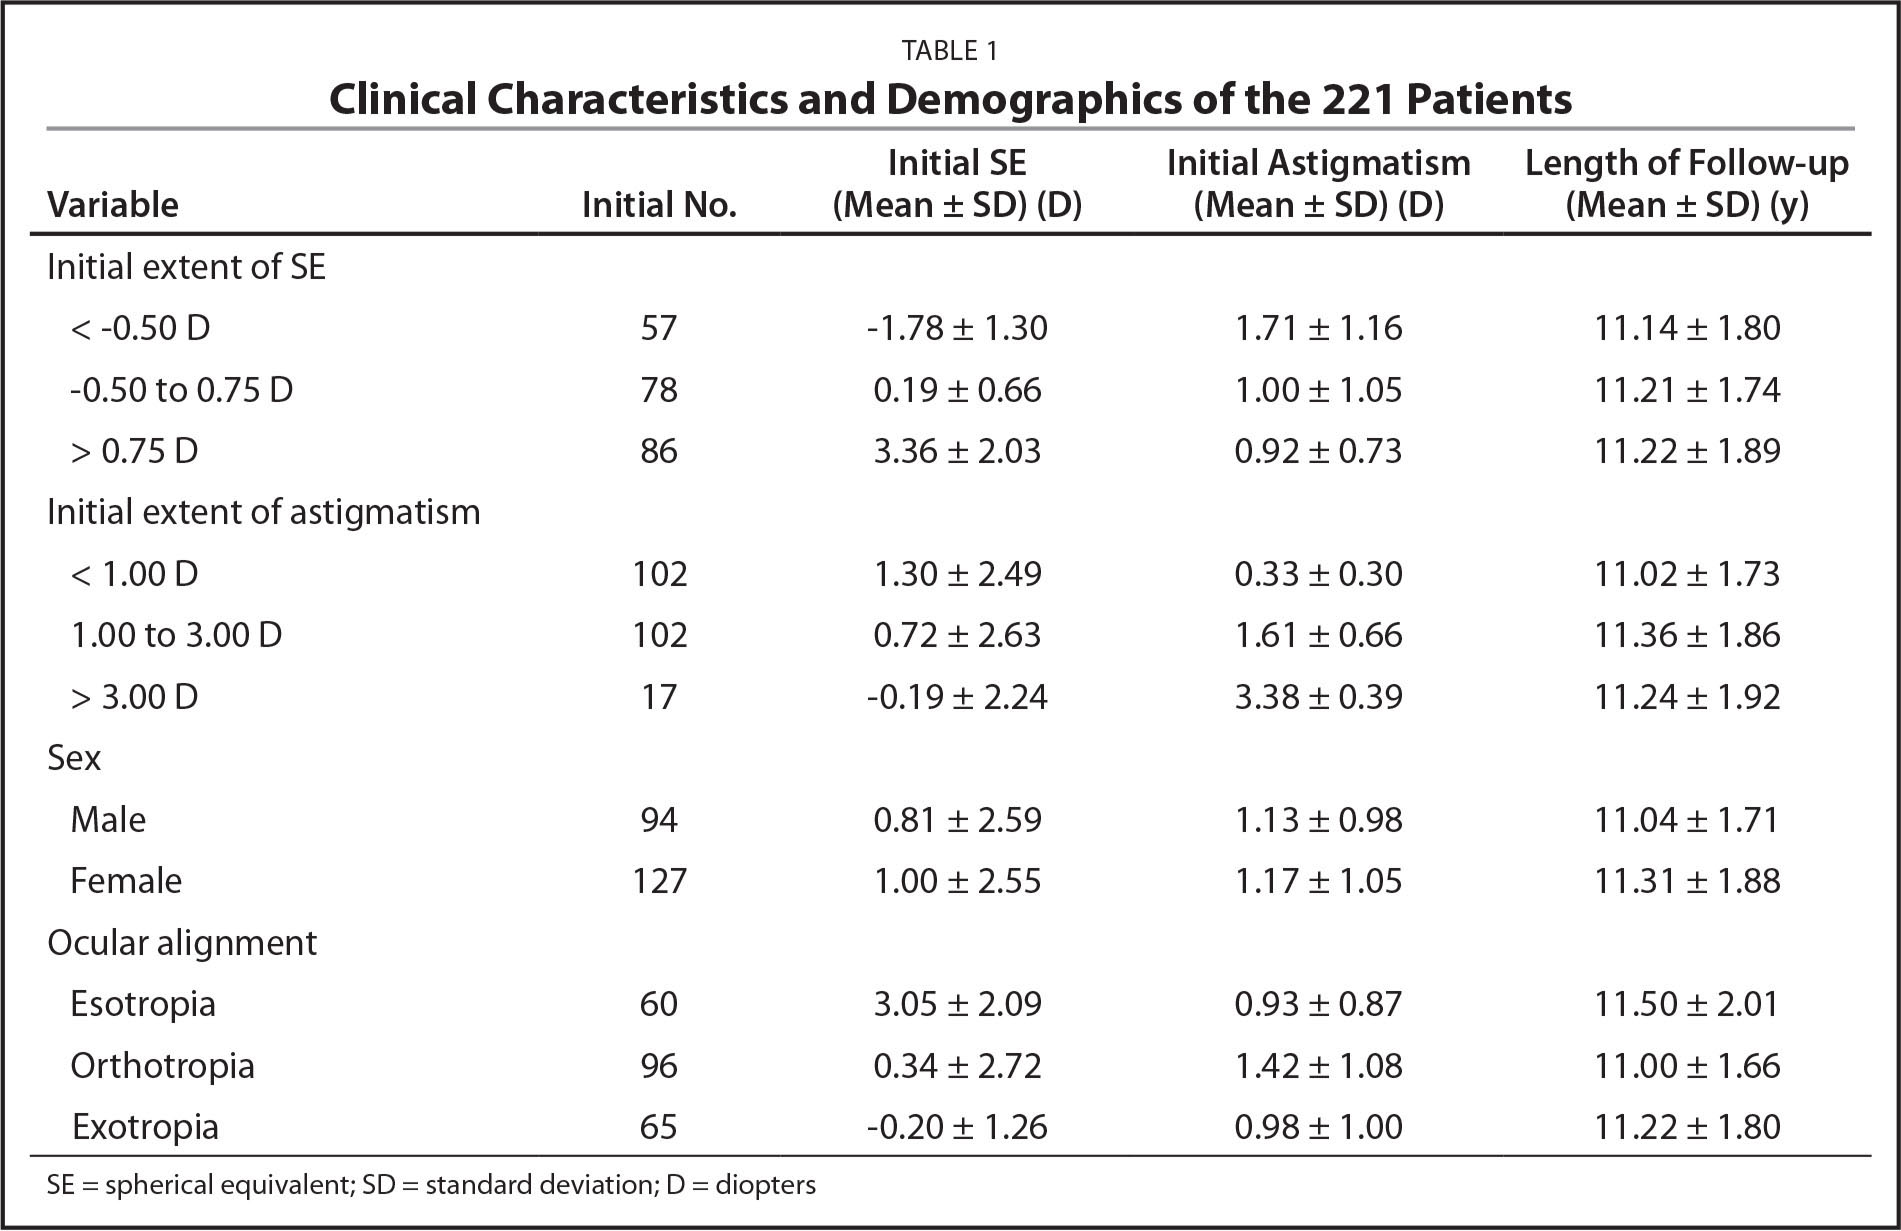 Clinical Characteristics and Demographics of the 221 Patients